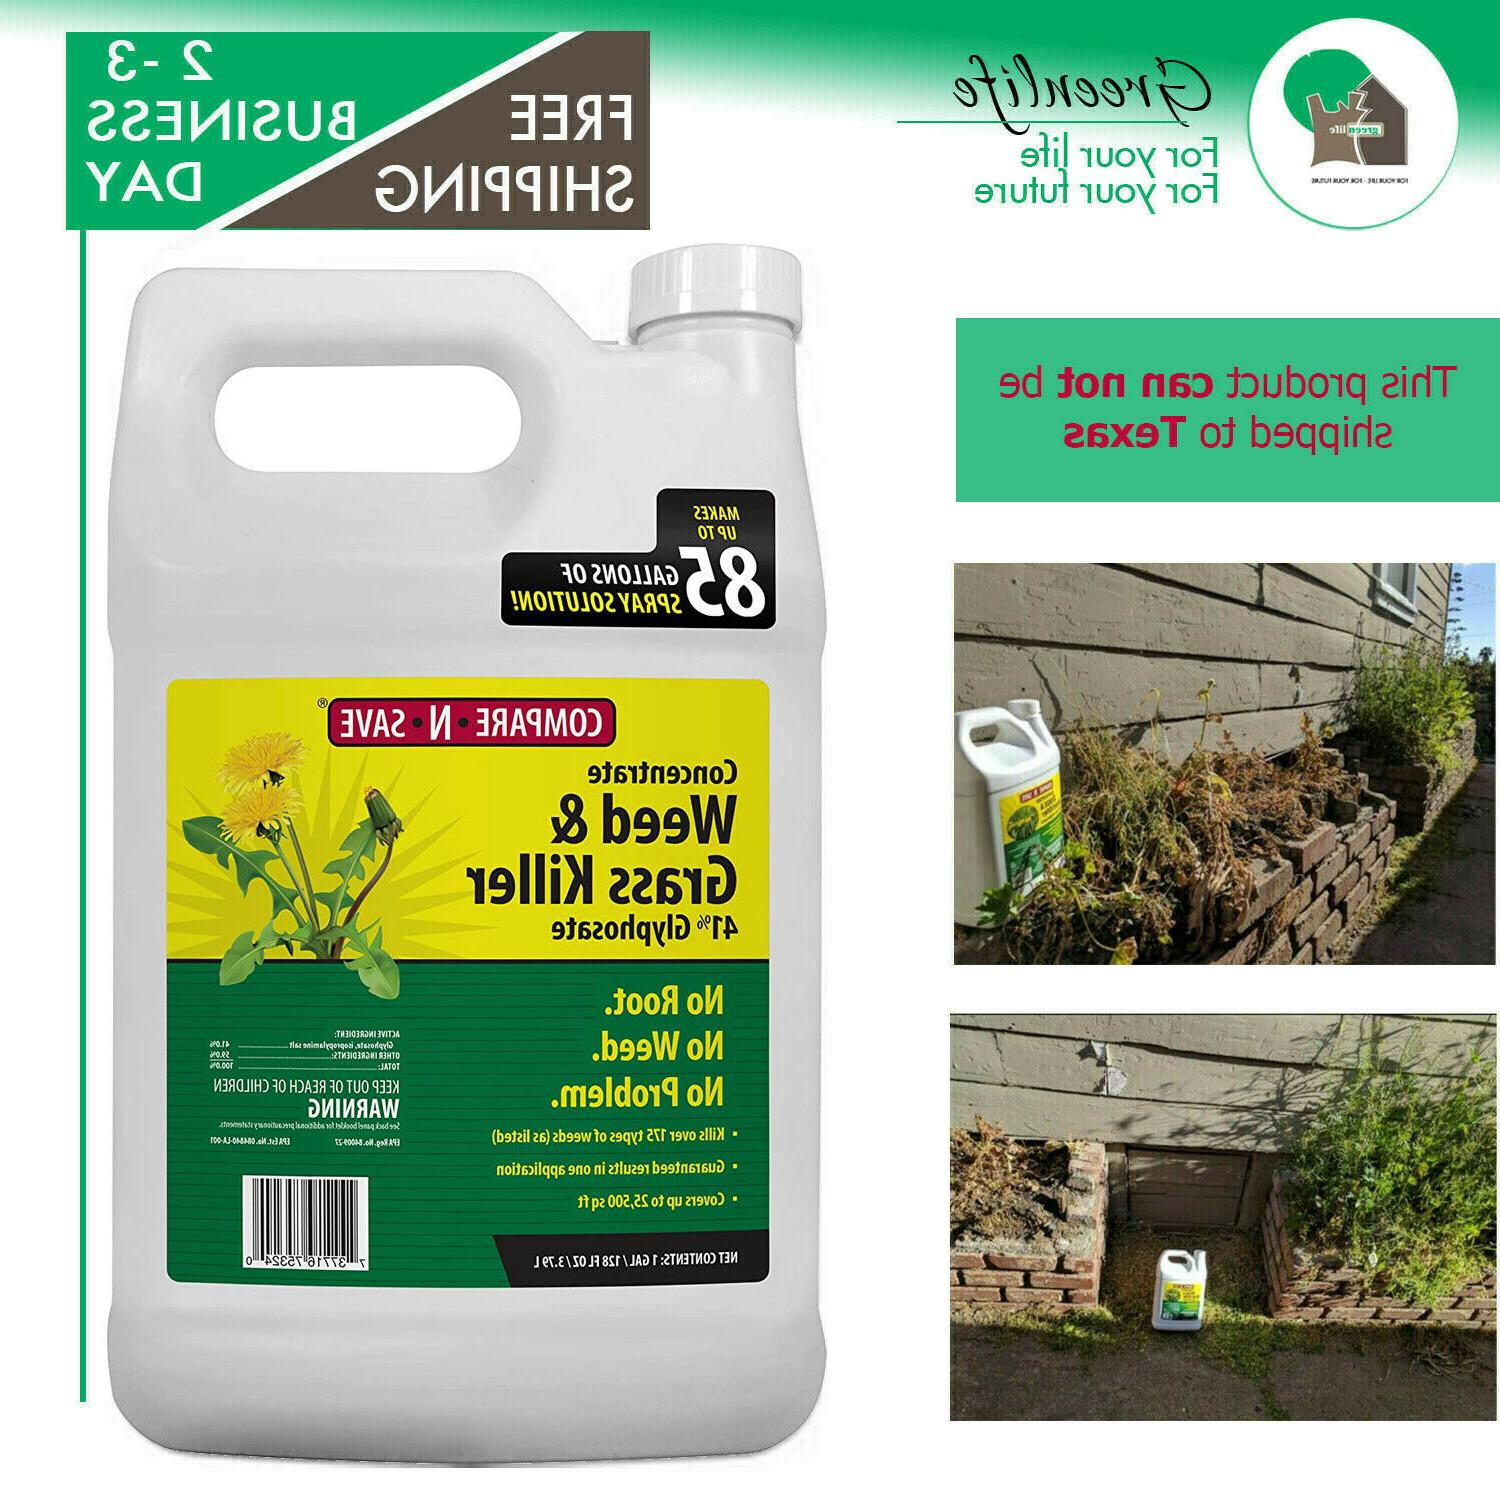 grass weed killer 1 gallon compare n